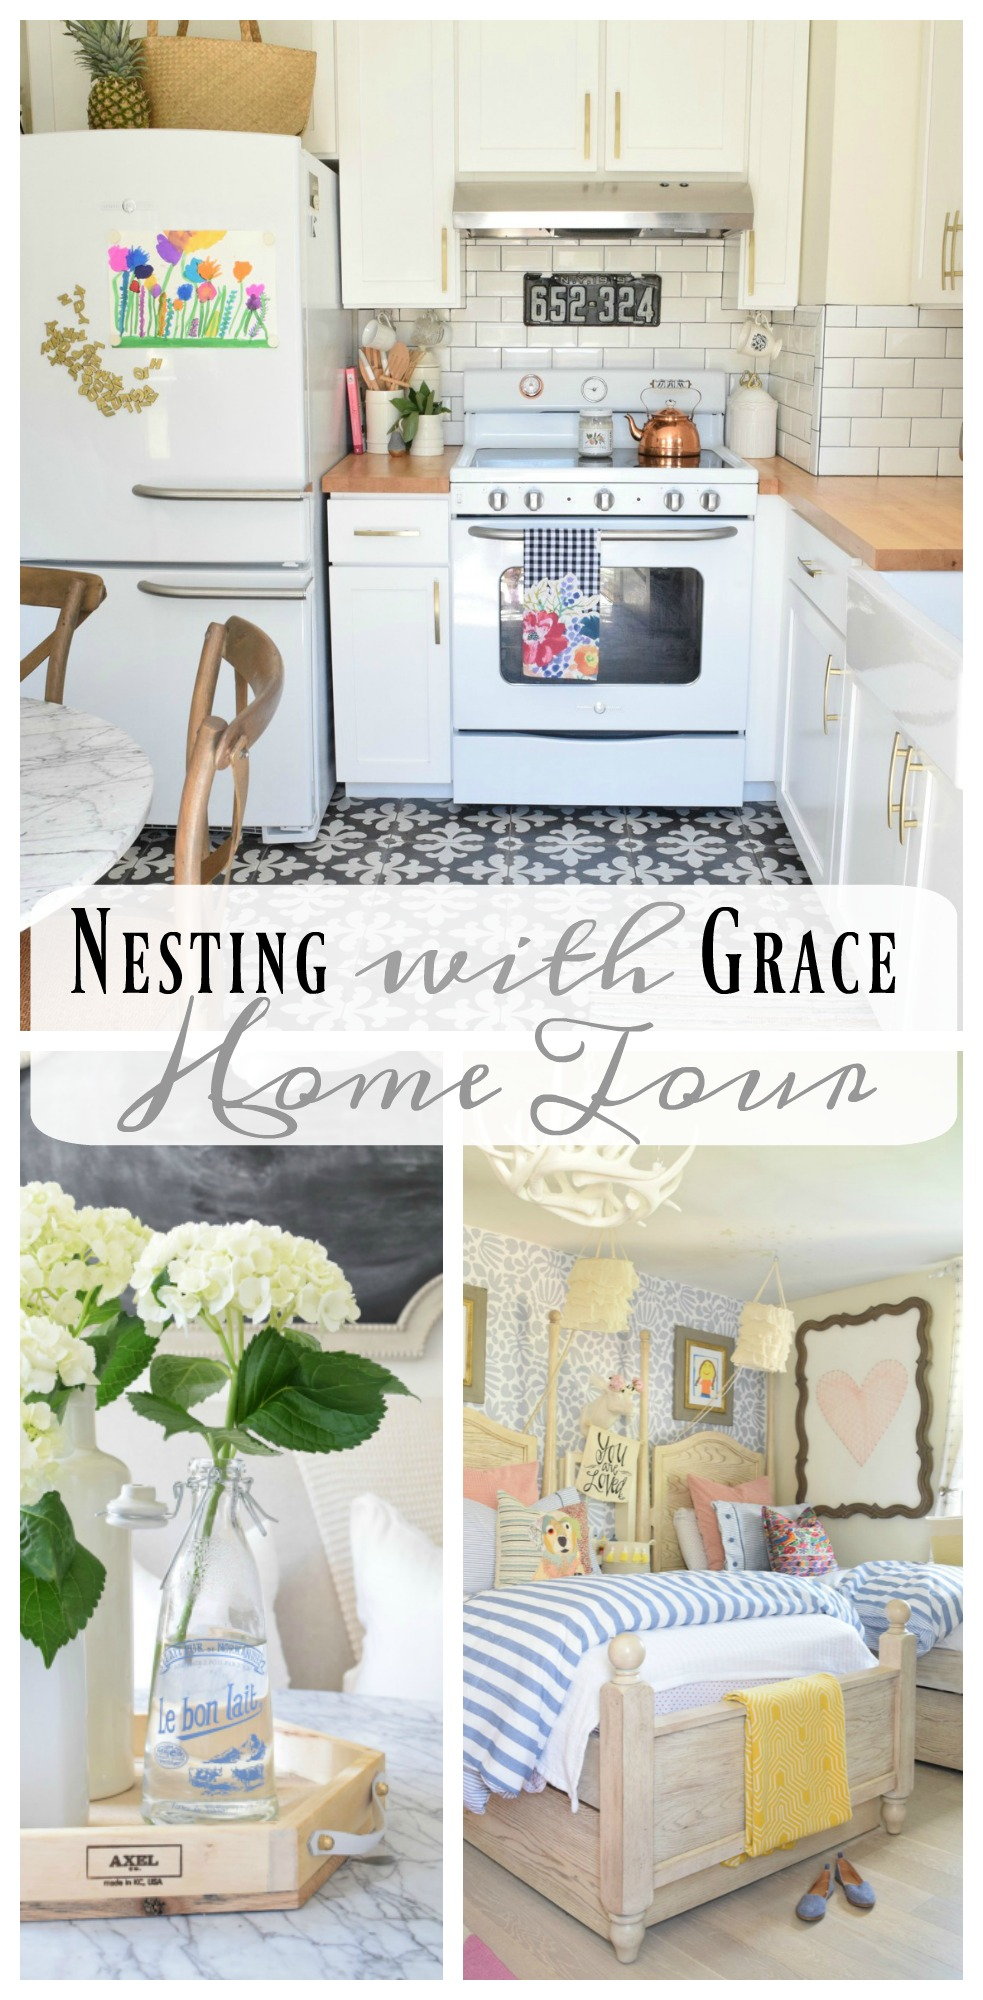 Most Popular Blog Posts Of 2016  Nesting With Grace Home Tour